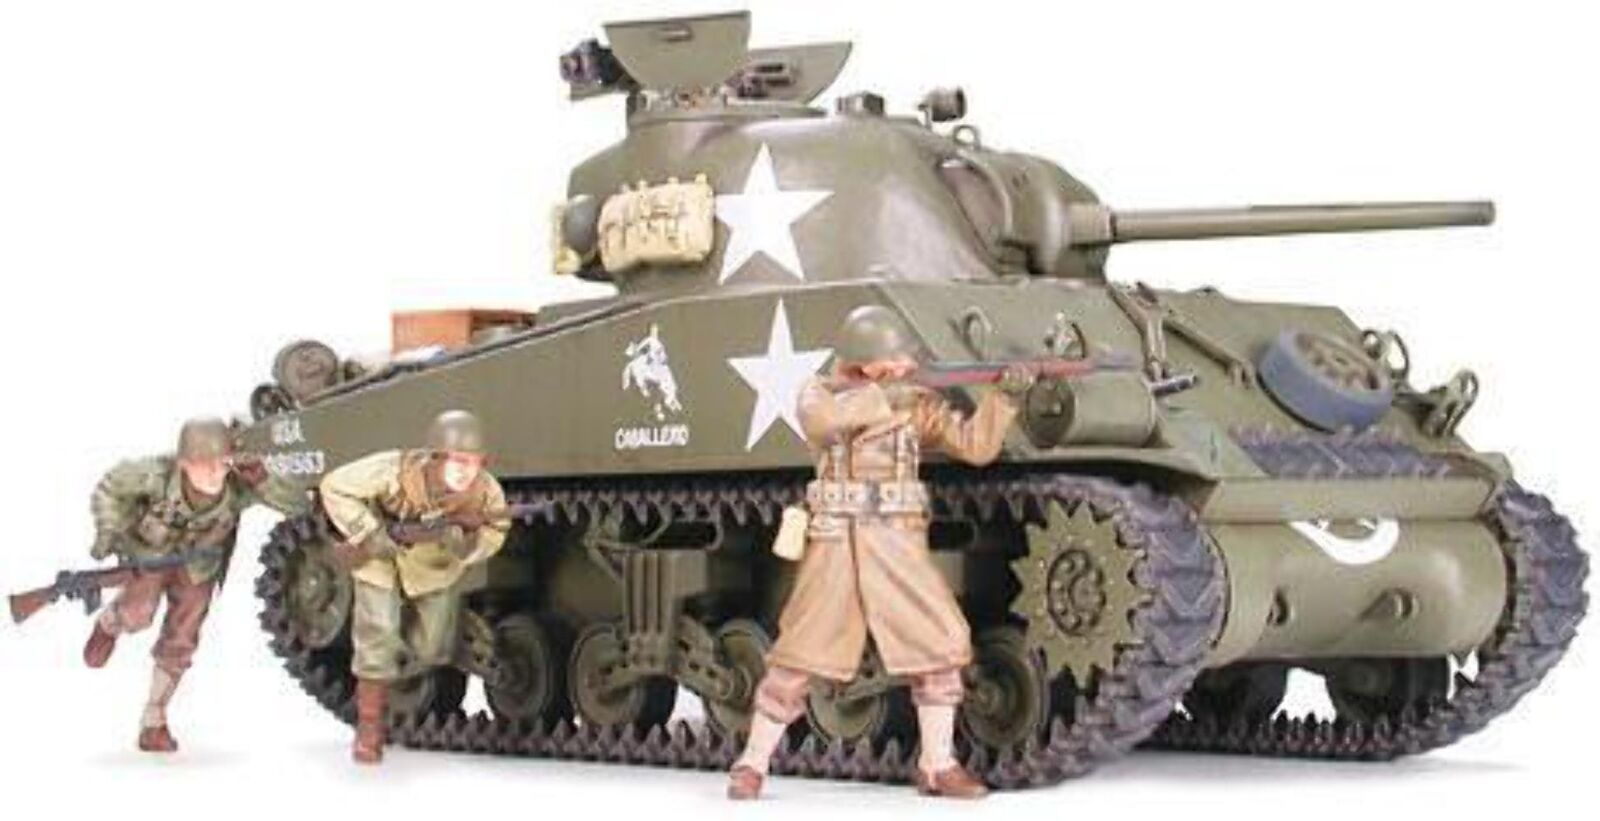 Tamiya U.S. Medium Tank M4A3 Sherman 75mm Gun Late Production